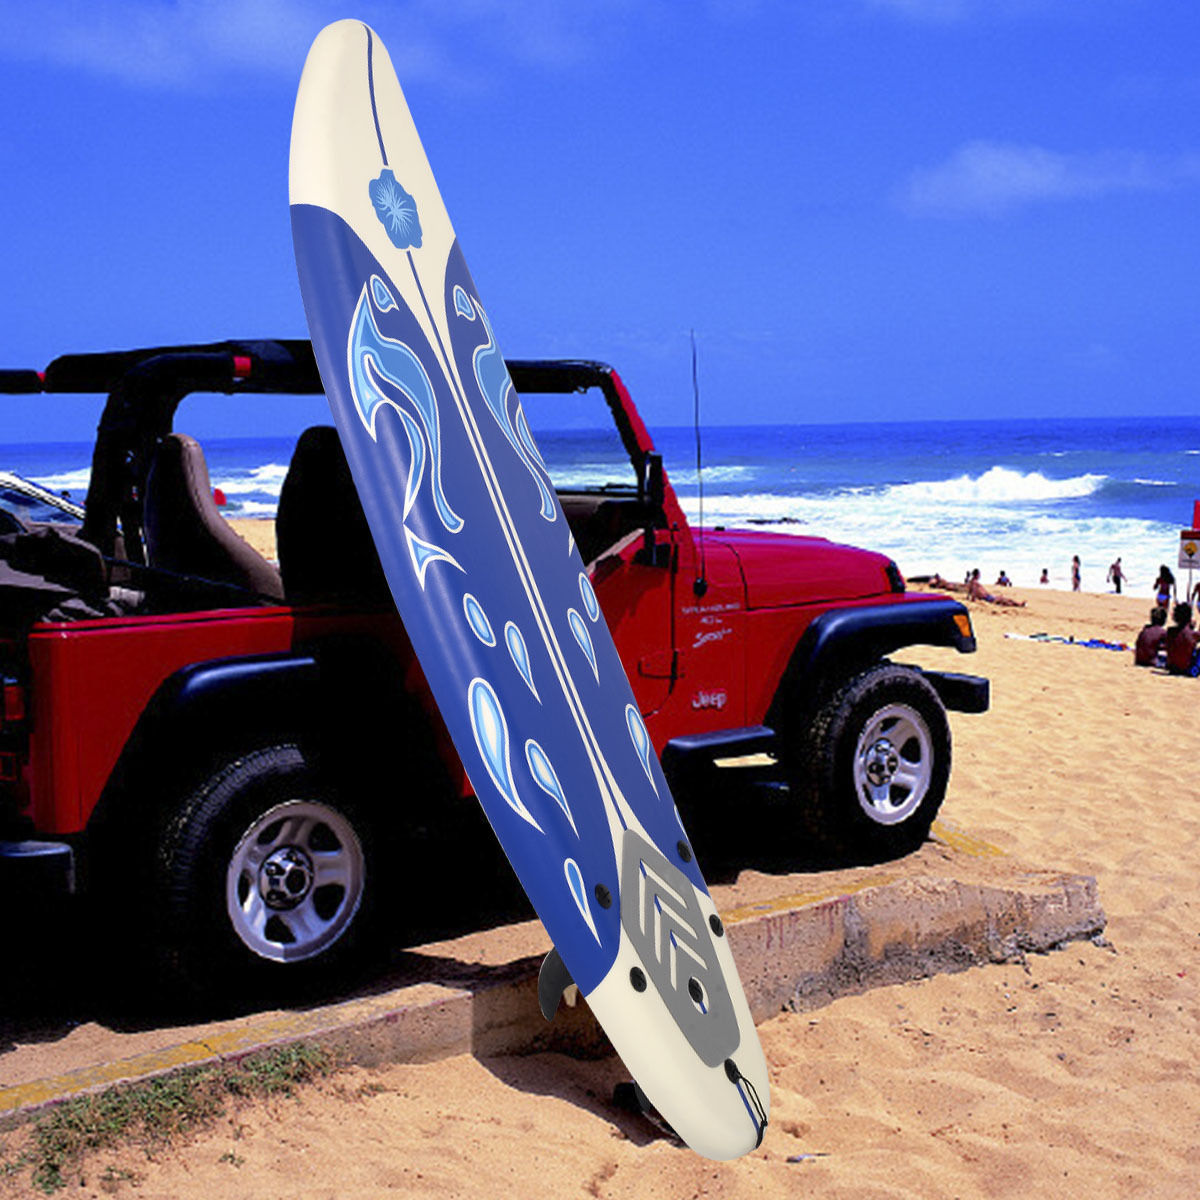 Click here to buy Costway 6' Surfboard Surf Foamie Boards Surfing Beach Ocean Body Boarding White by Costway.